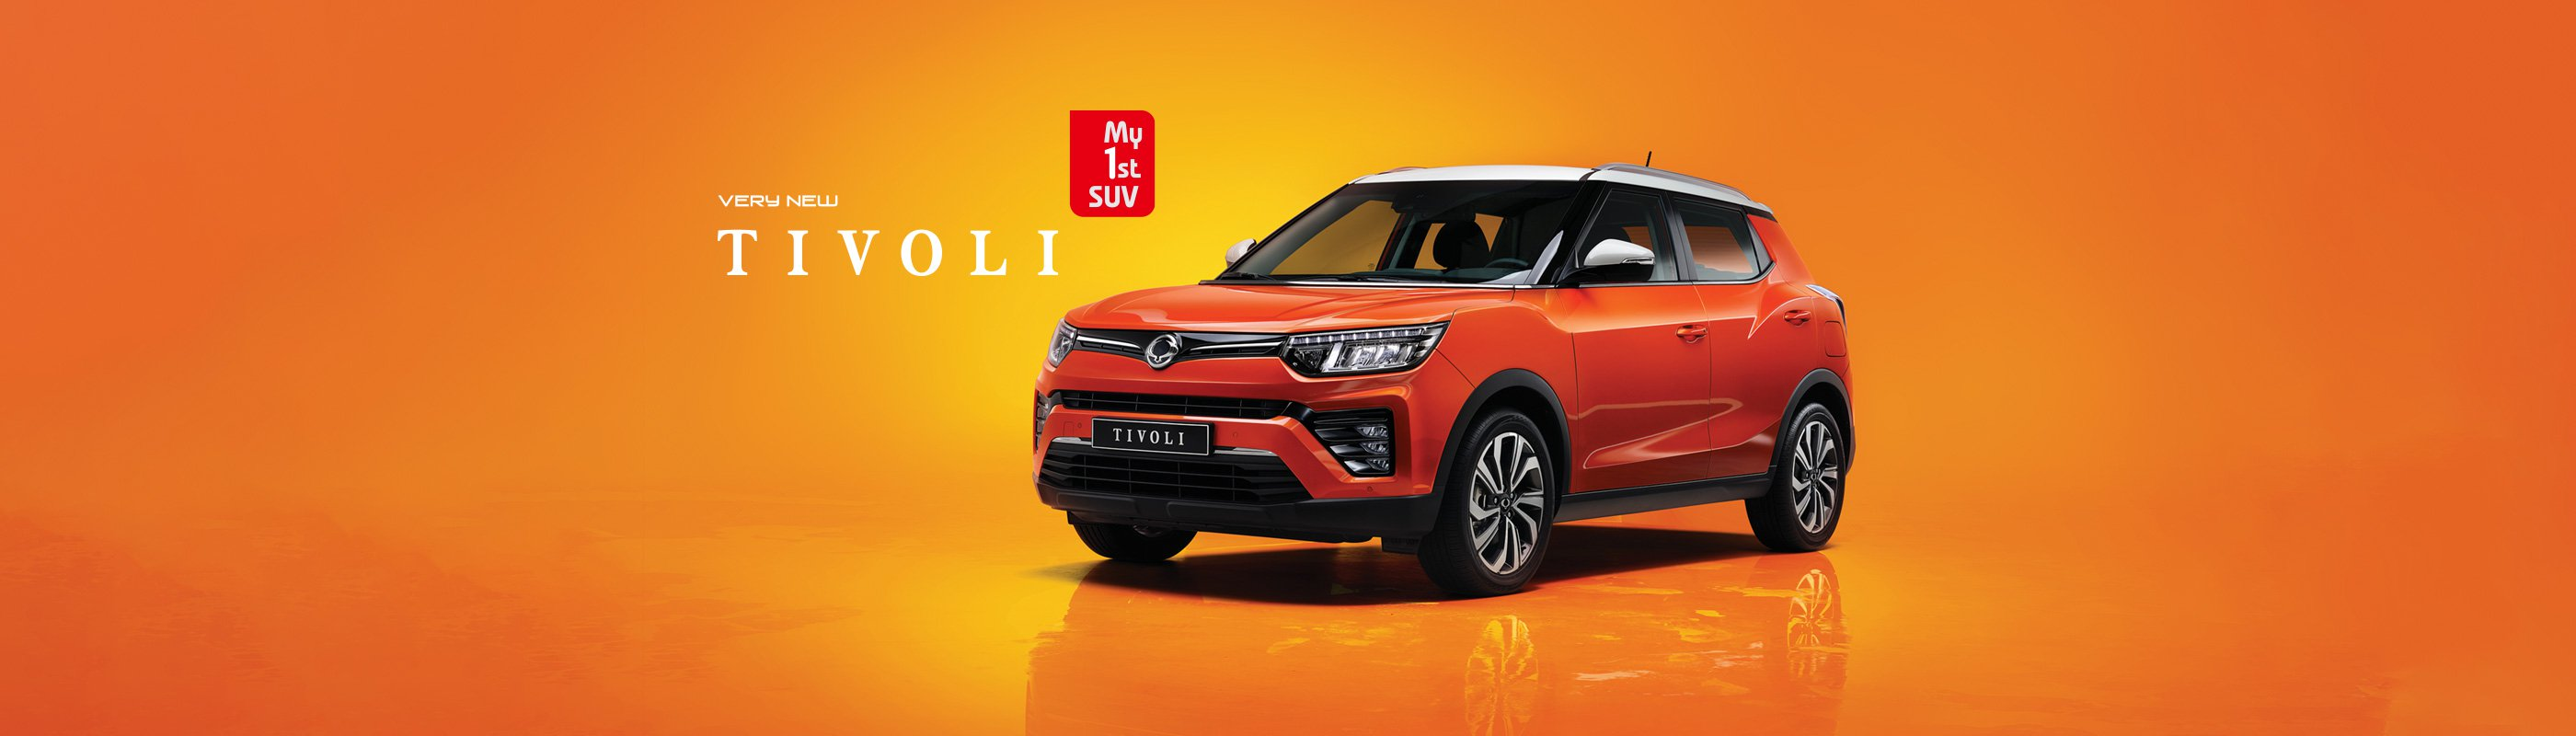 The mid-generational refresh of the SsangYong Tivoli SUV will arrive in the showrooms across South Korea in early June 2019